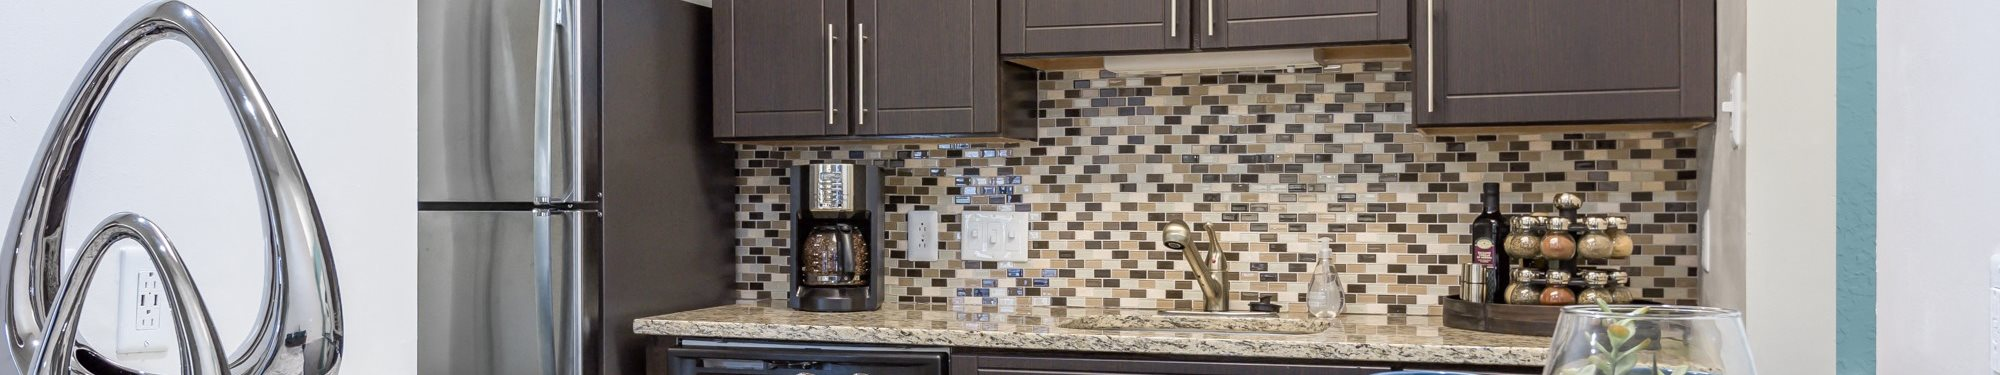 Kitchen with chrome finished appliances, a metal decorative art piece on the bar along with three blue mugs, and wooden cabinetry with a mosaic back splash